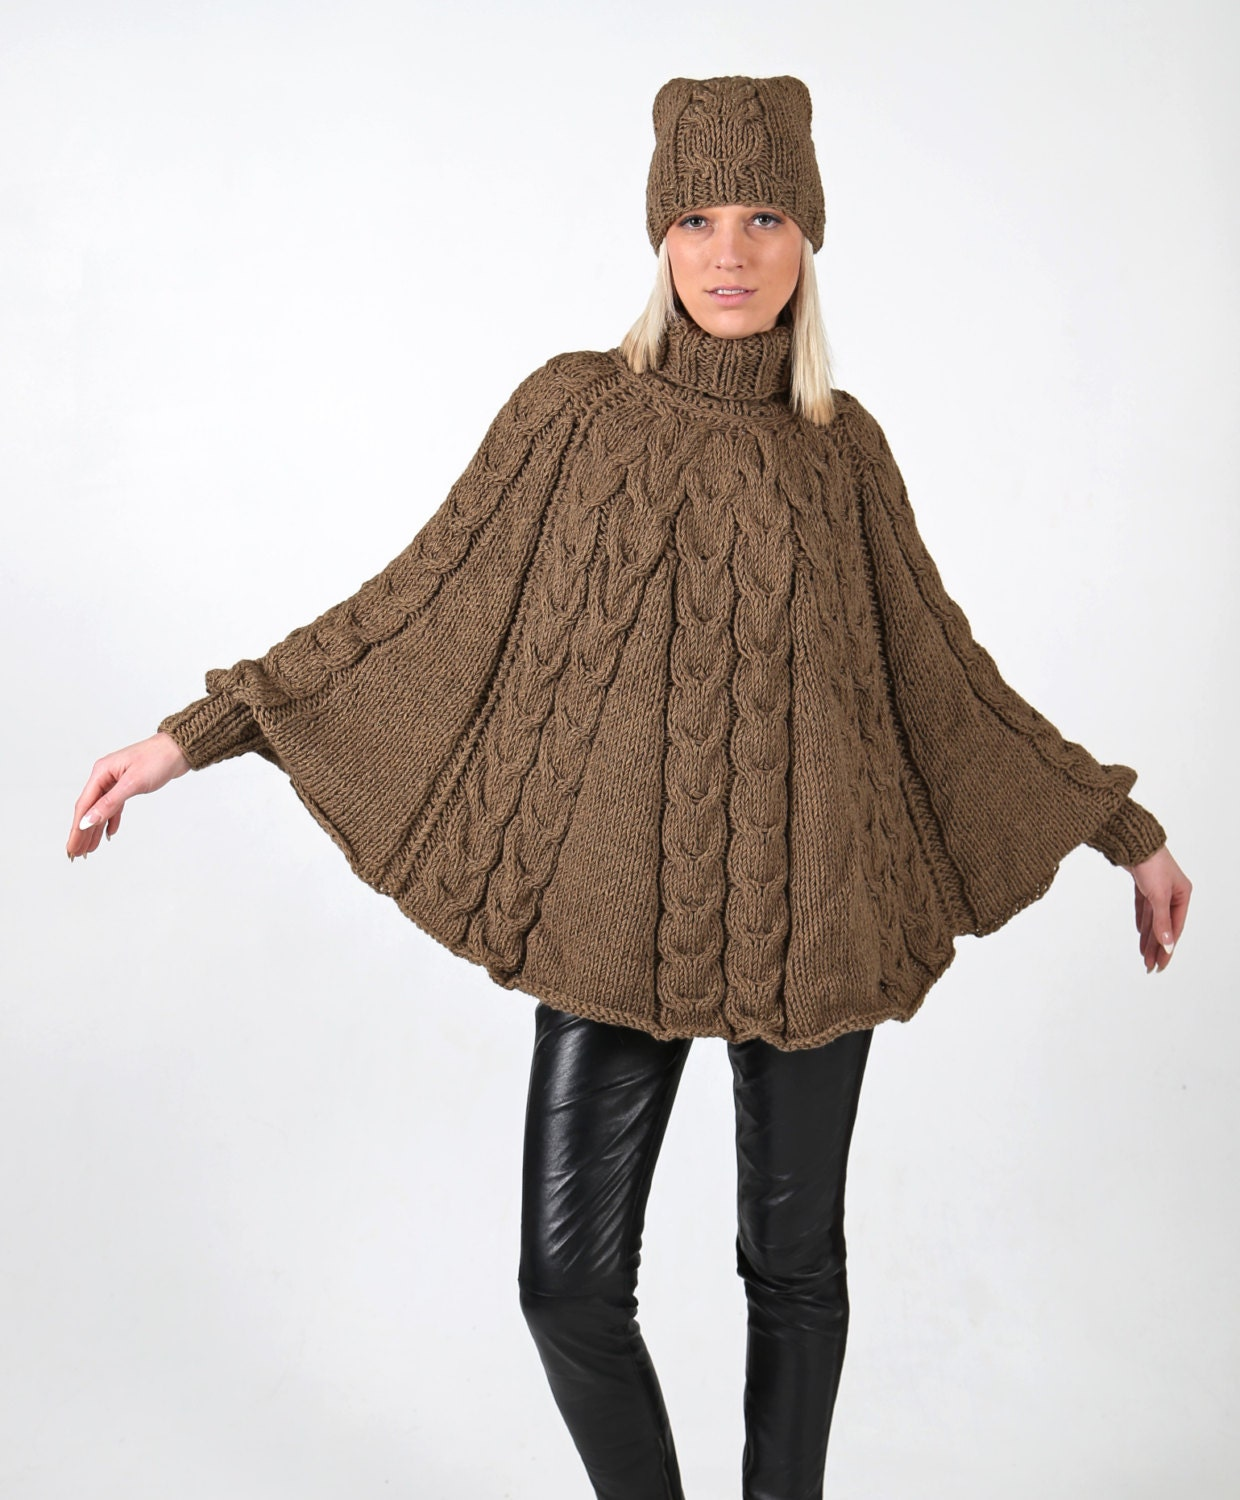 Knitting Pattern For Cape With Sleeves : Instant Download PDF pattern. Hand knitted poncho with cuffs